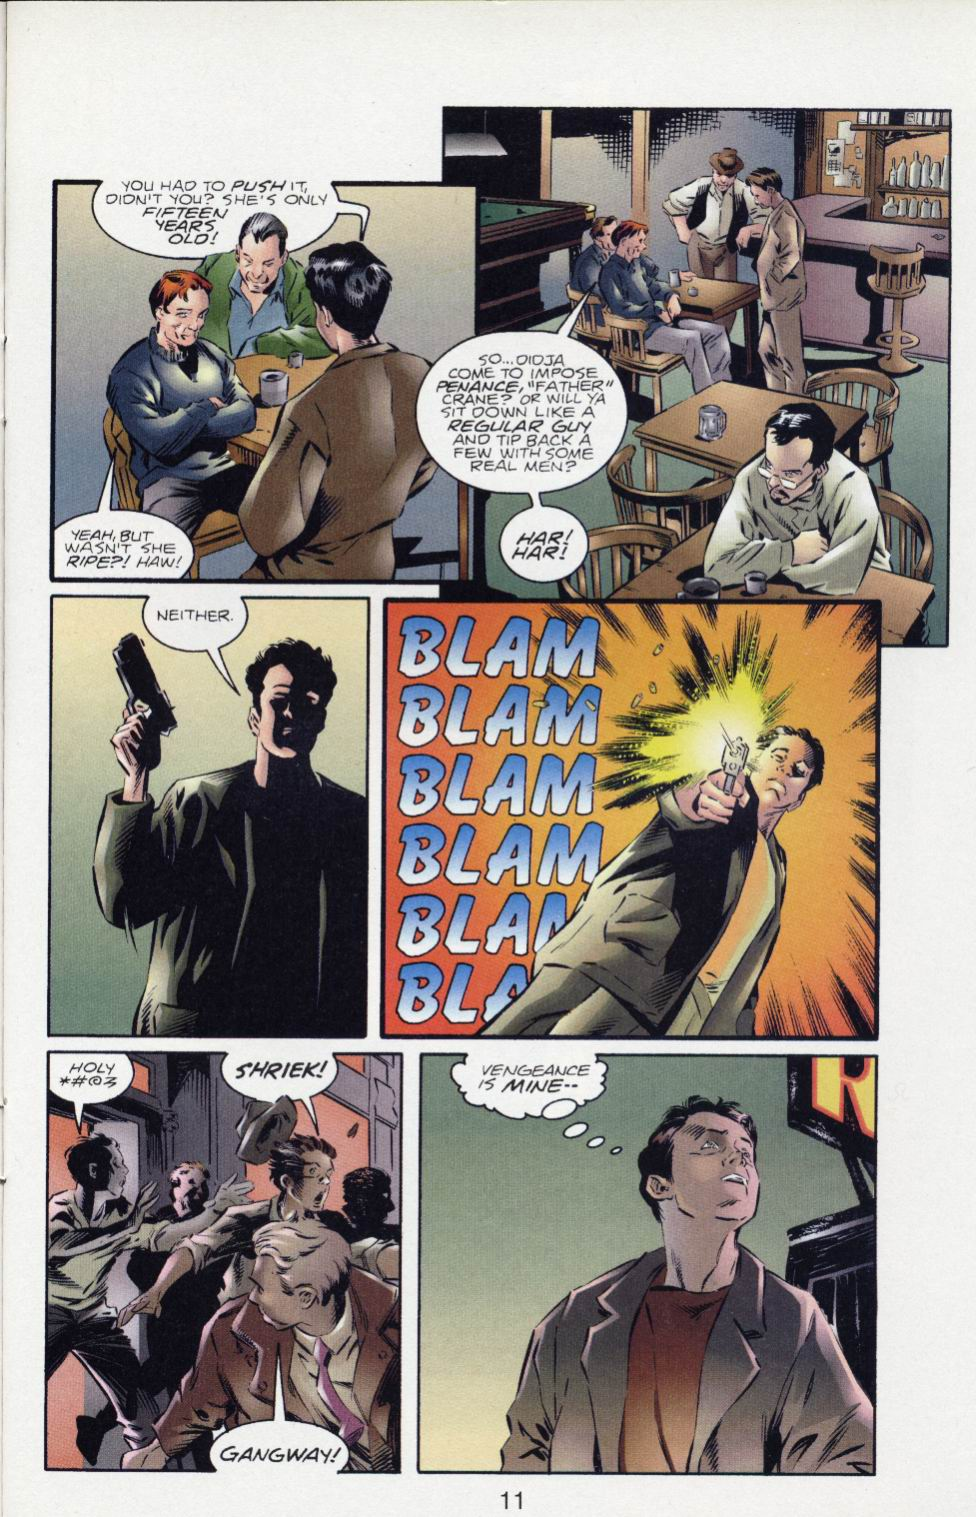 In 'The Legend Of Supreme' (1994) #1, Ethan Crane shots two men with a gun over the rape of a 15 year-old girl.